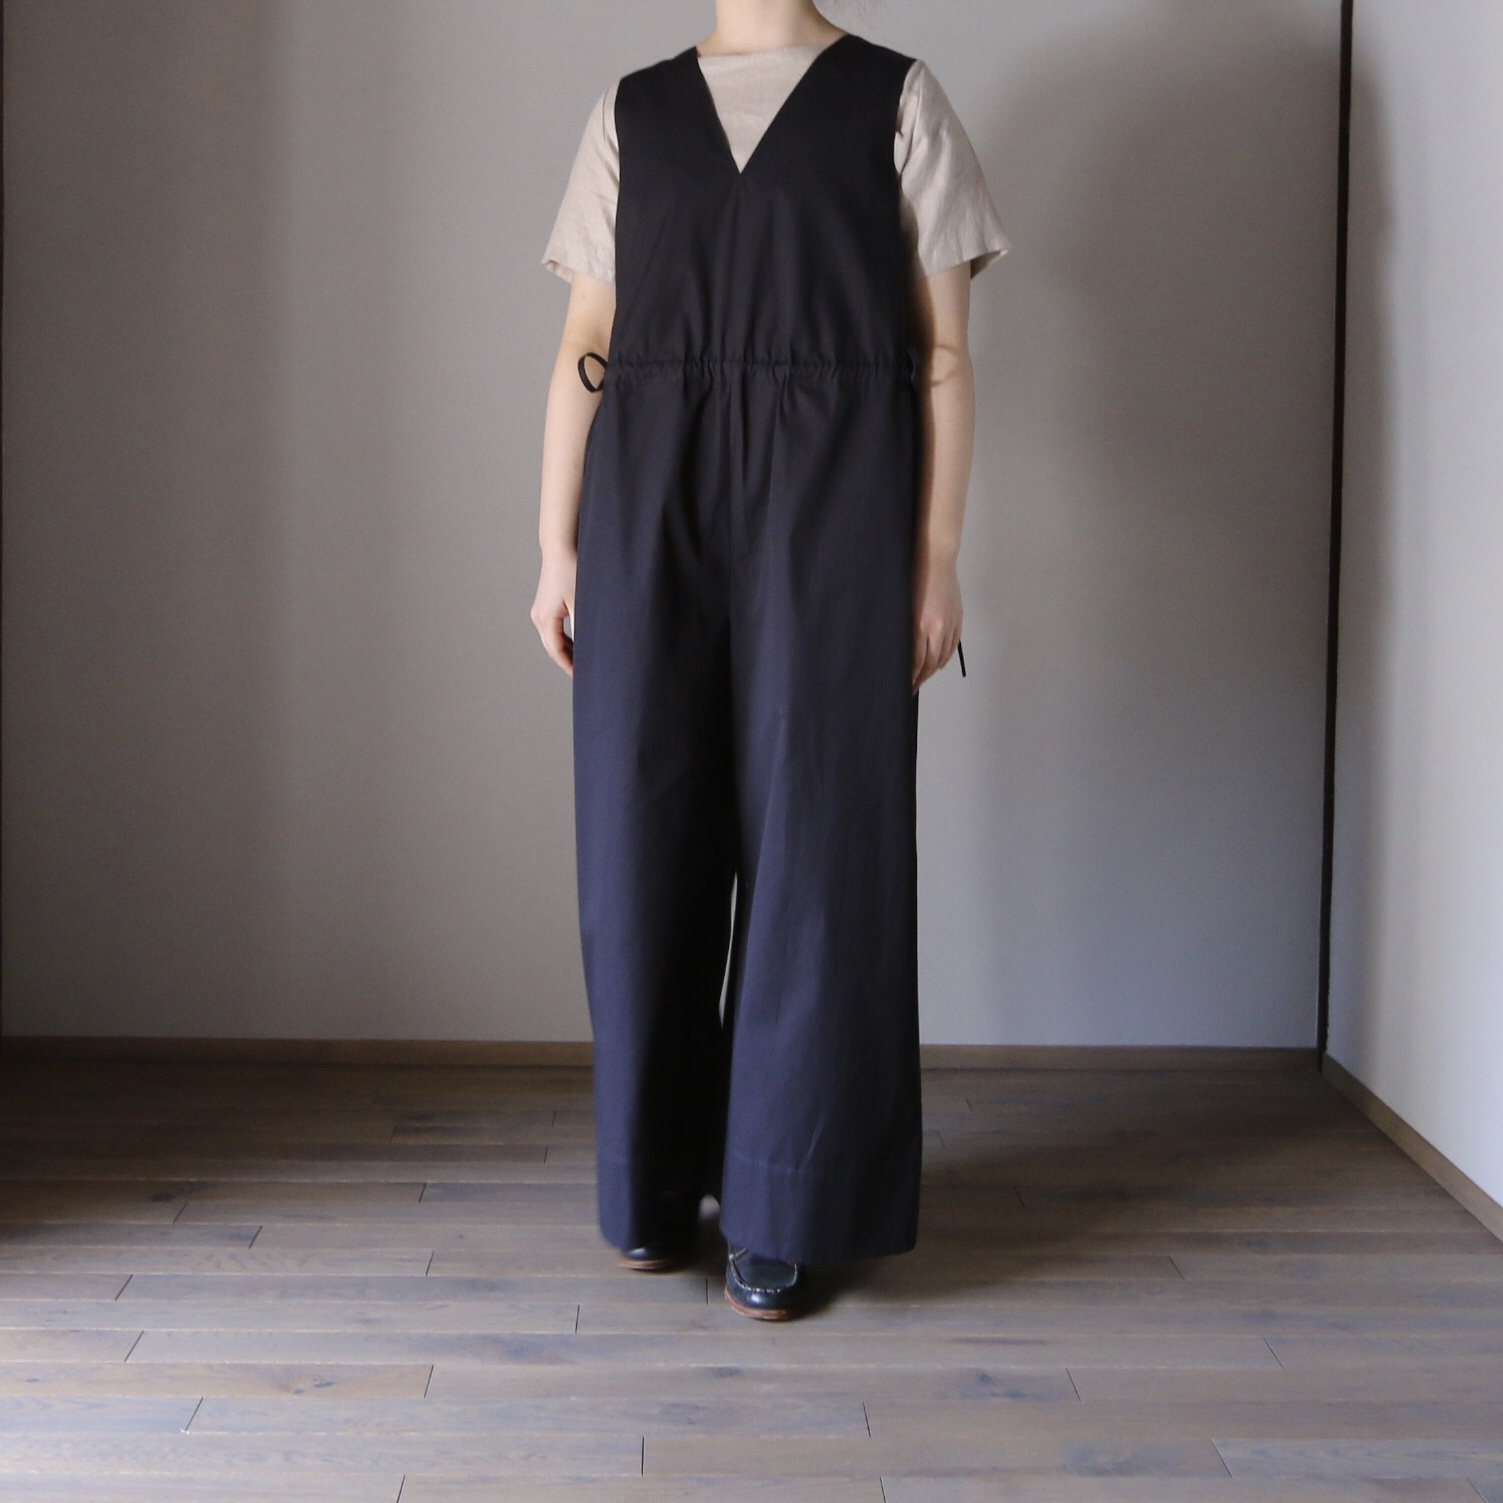 TENNE HANDCRAFTED MODERN/テン・ハンドクラフティッド・モダン No Sleeve All-In-One #21-018